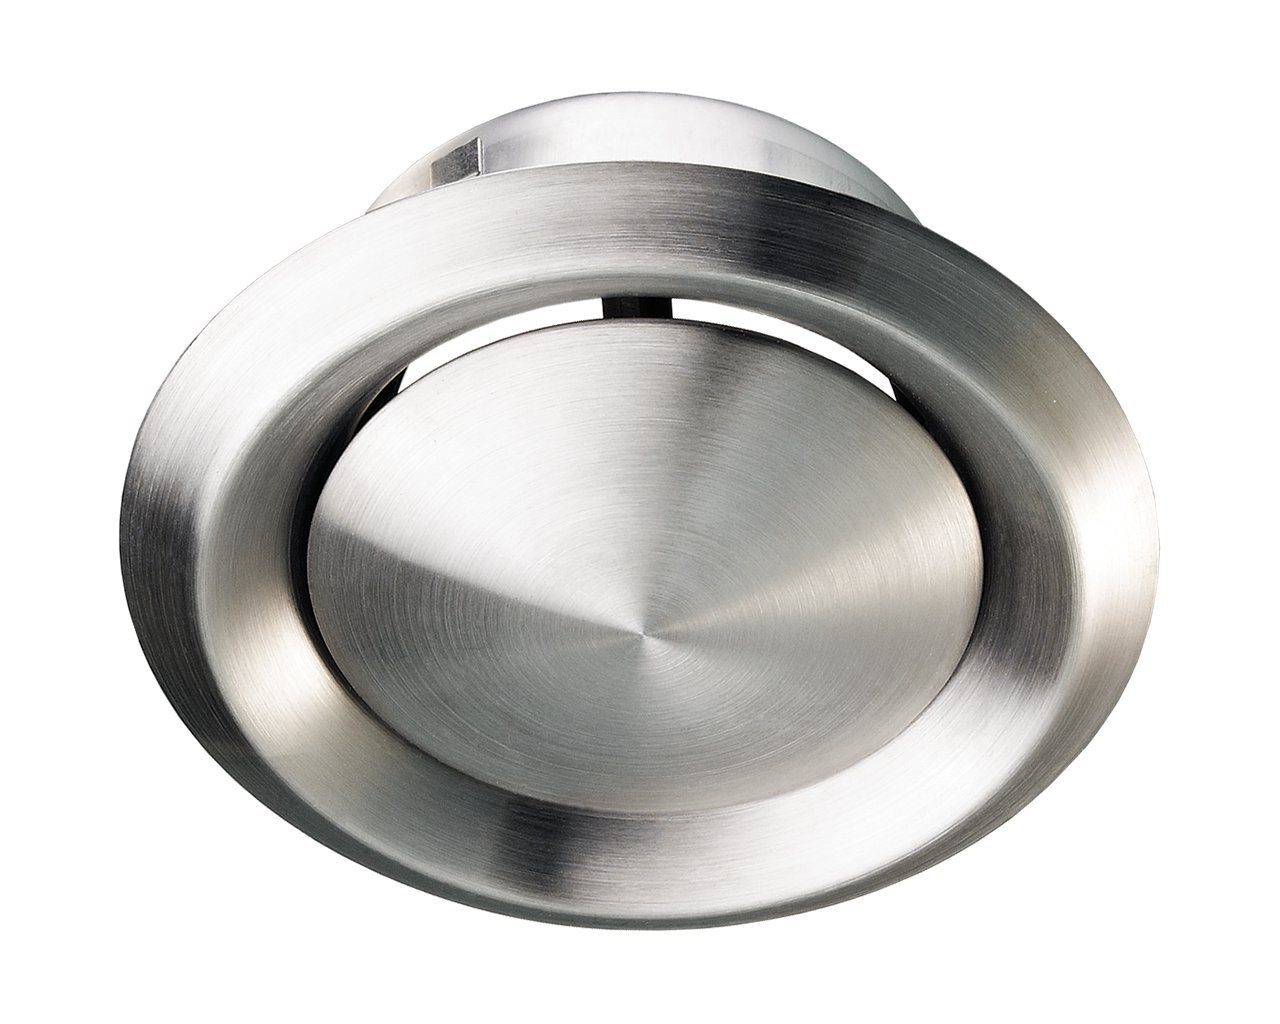 Stainless Steel Metal Ceiling Mounted Round Air Valve Vent Grill, MVHR Heat Recovery, Ventilation Duct Fan (125mm (5') Dia) Ventilation Duct Fan (125mm (5) Dia) Fantronix